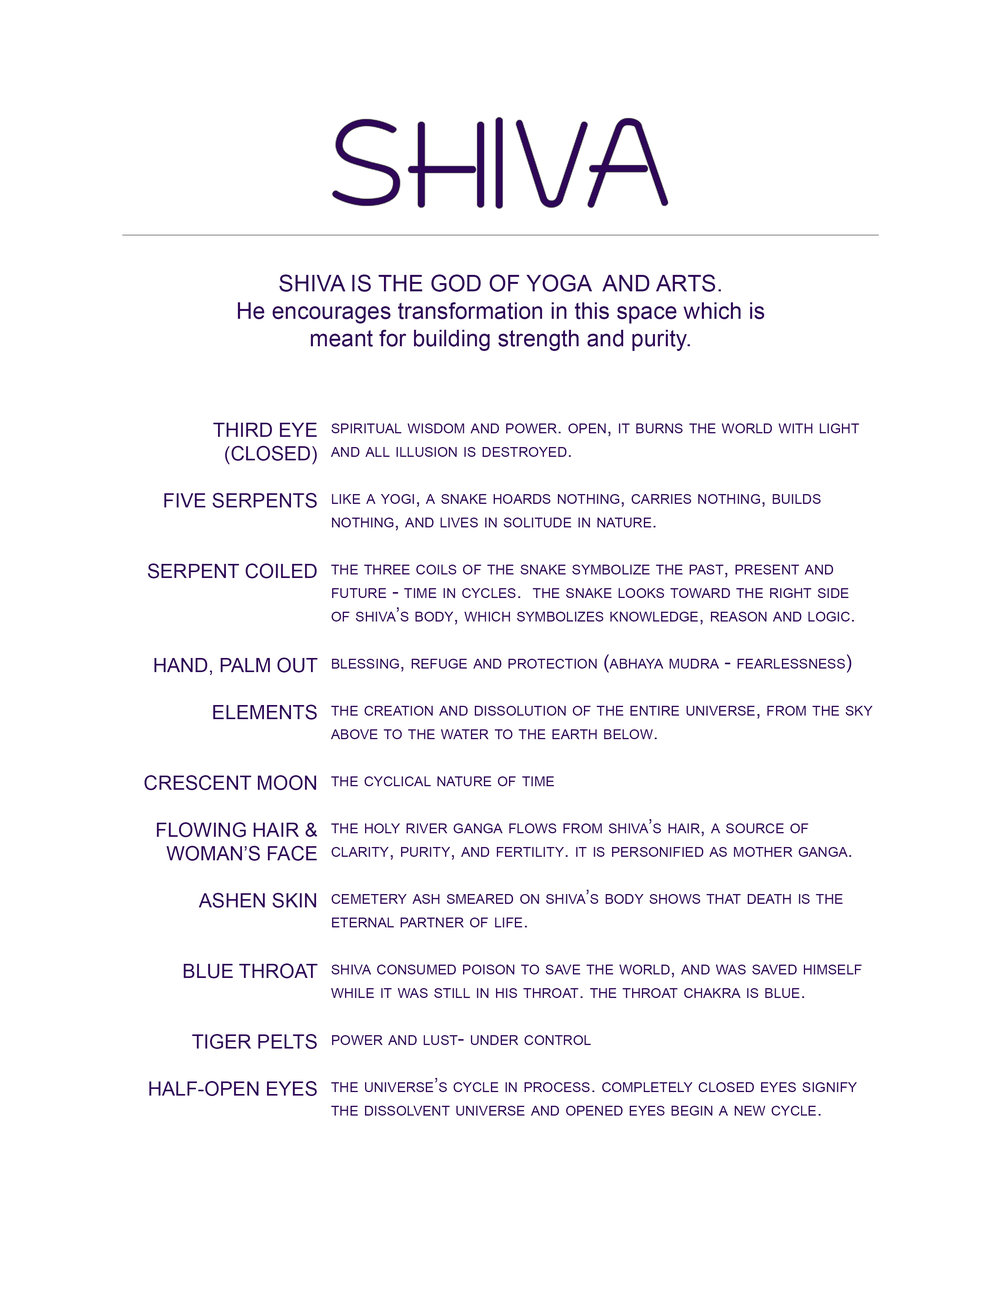 shiva facts.jpg